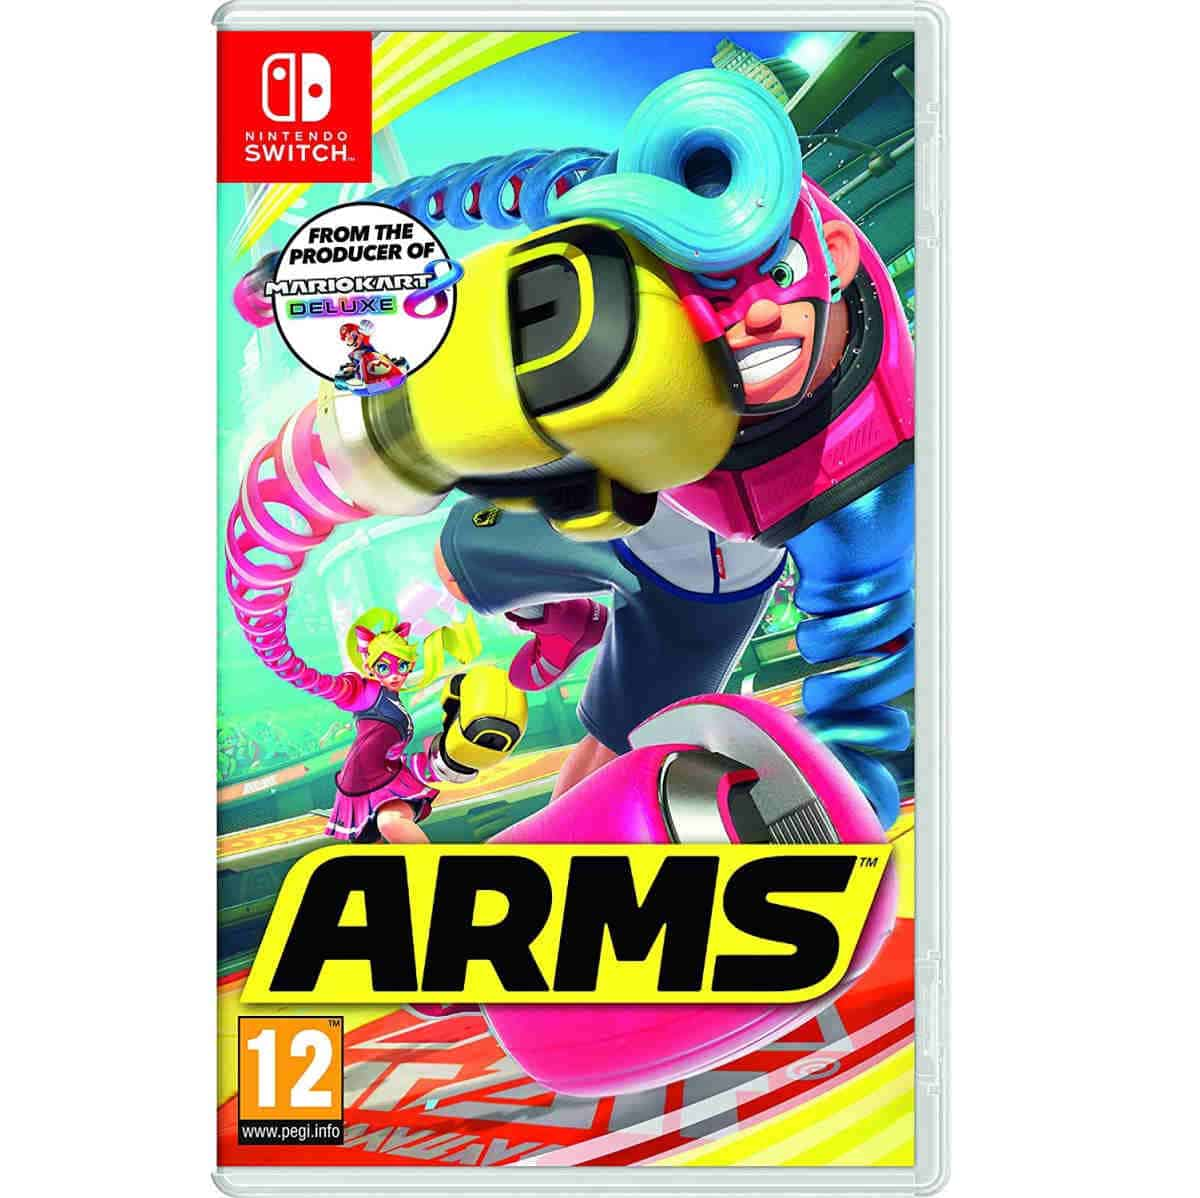 ARMS | Best Nintendo Switch Multiplayer Games